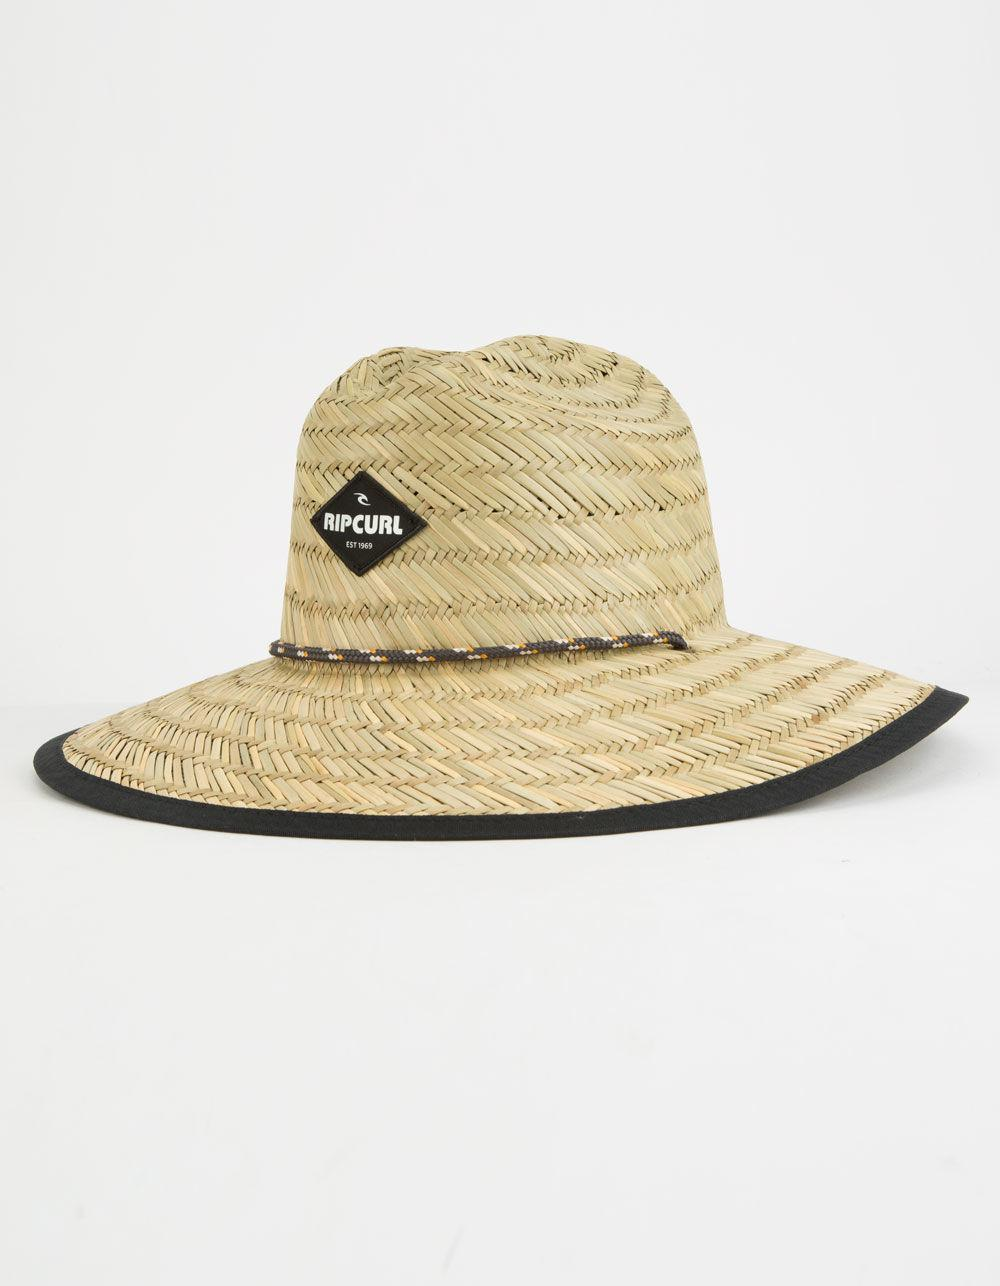 9eb7e181e90 Lyst - Rip Curl Palm Time Straw Lifeguard Hat in Natural for Men